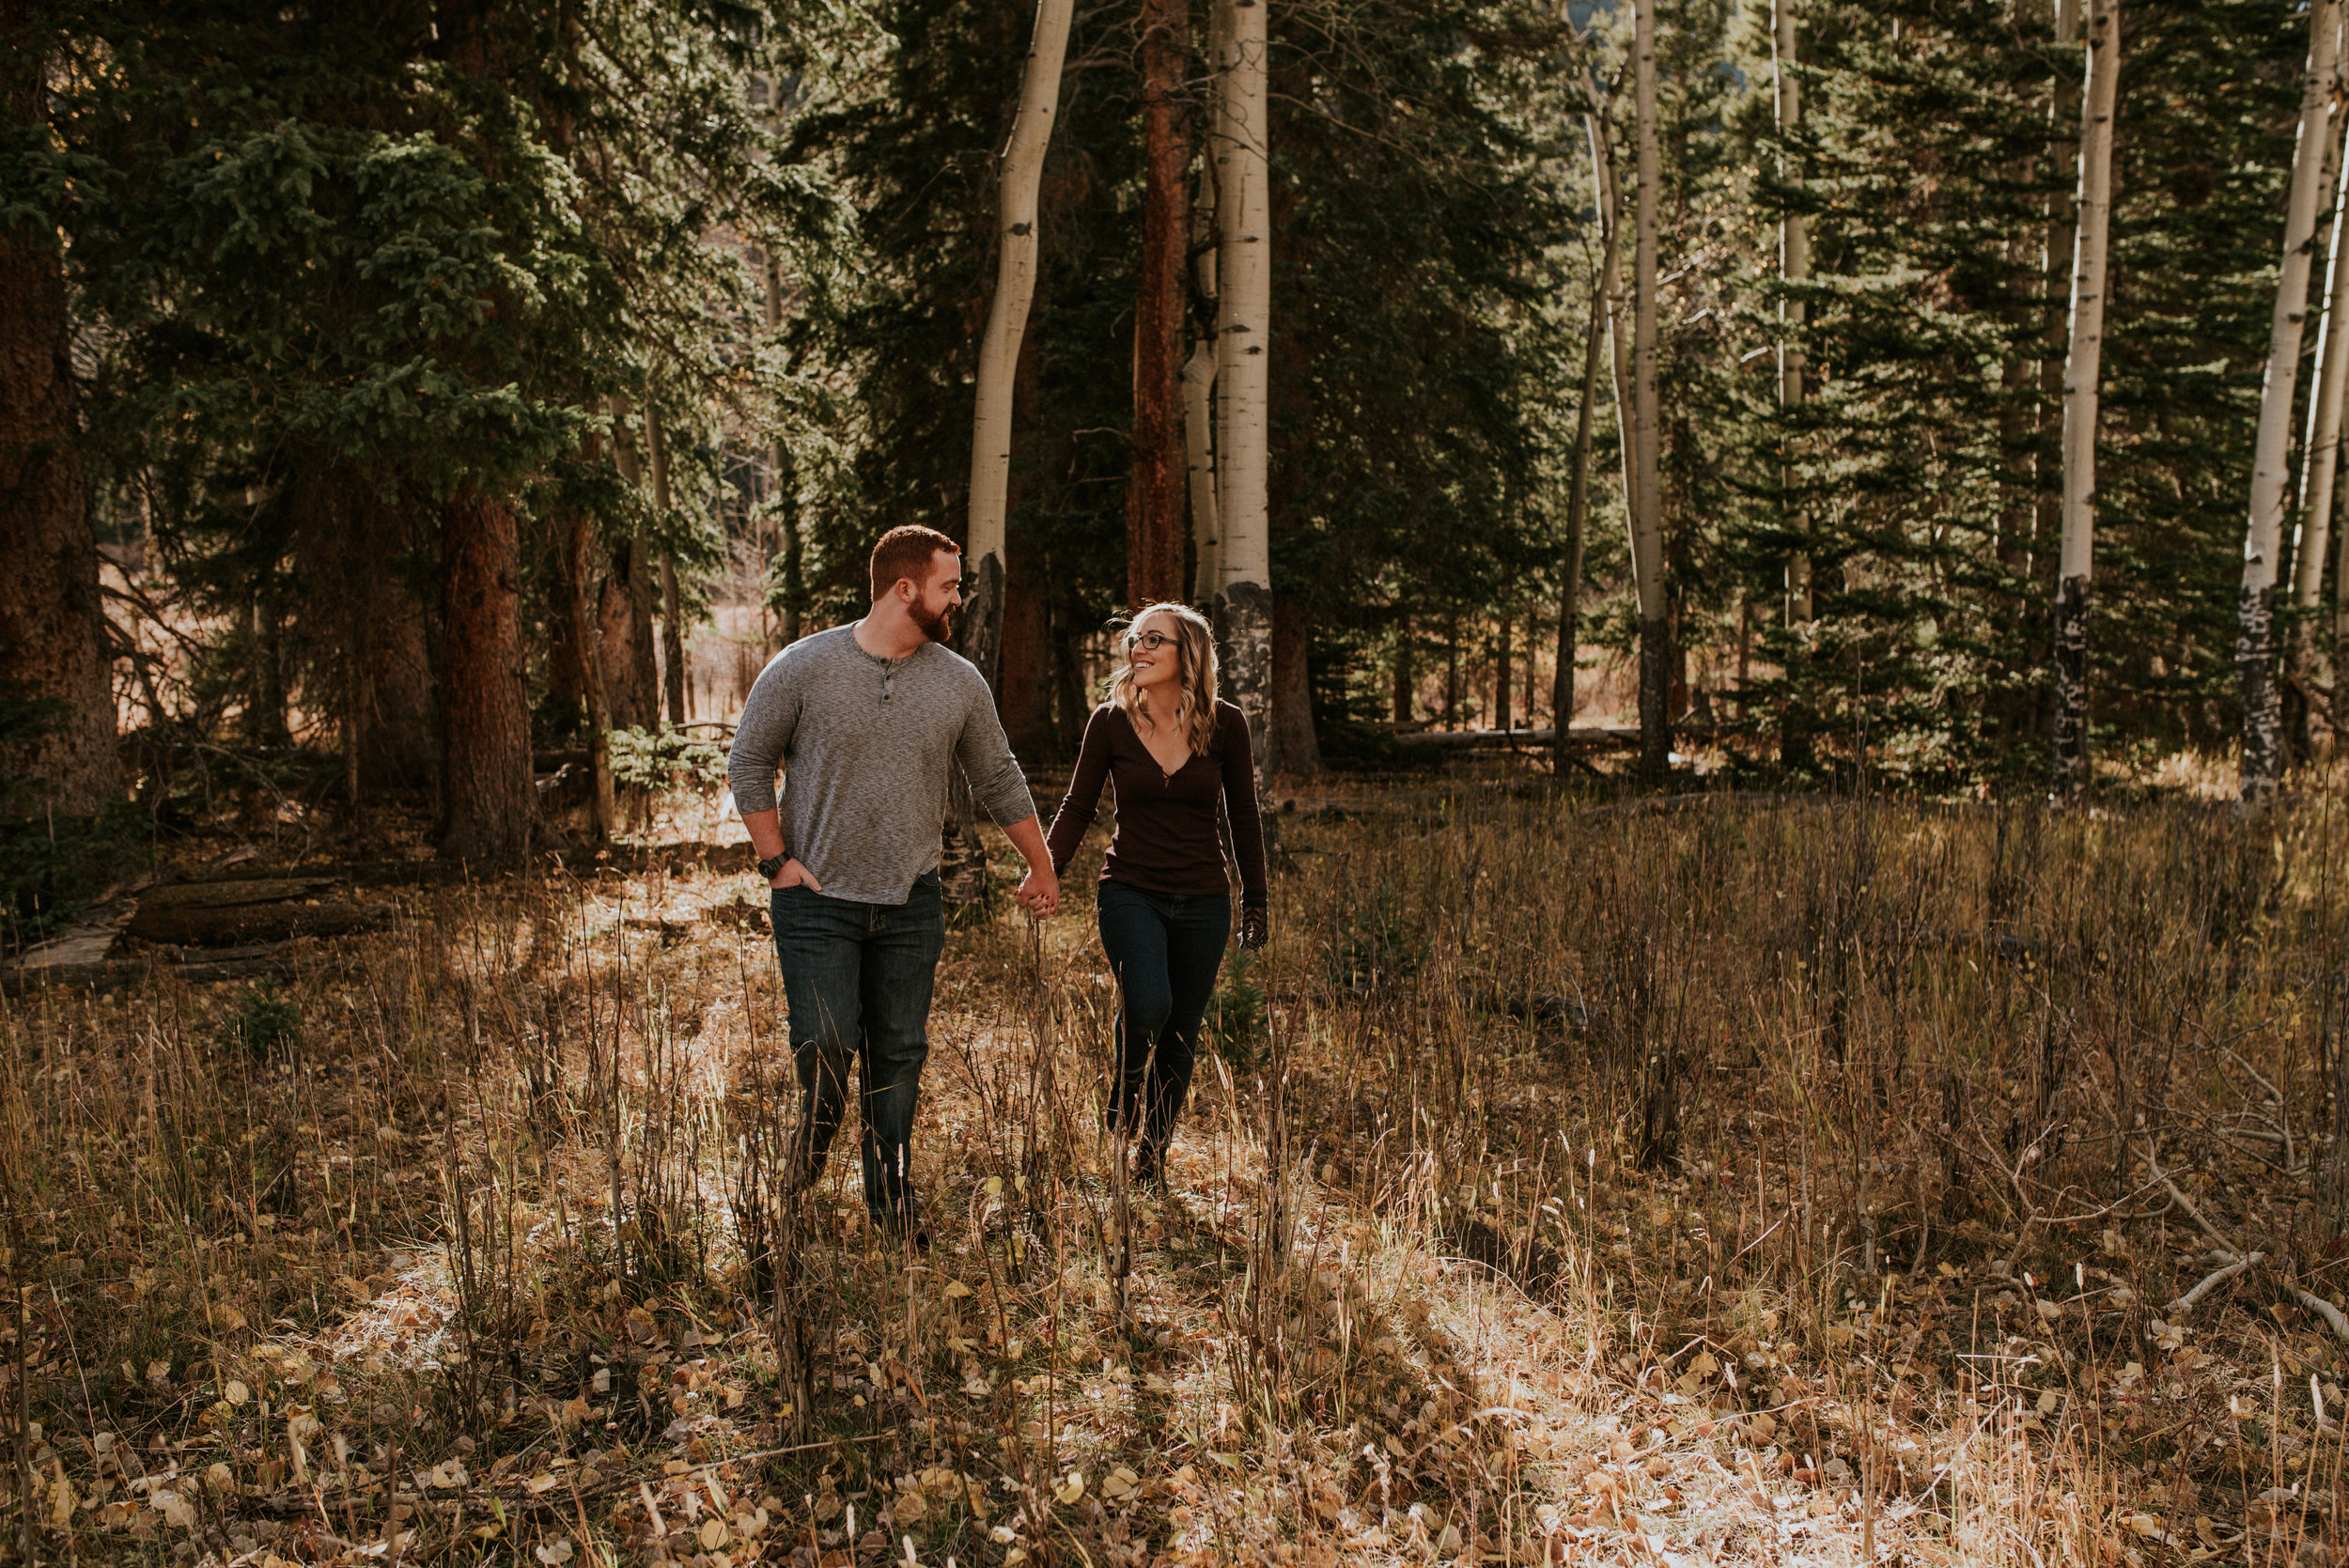 Romantic Windy Rocky Mountain National Park Engagement Photographer-26.jpg